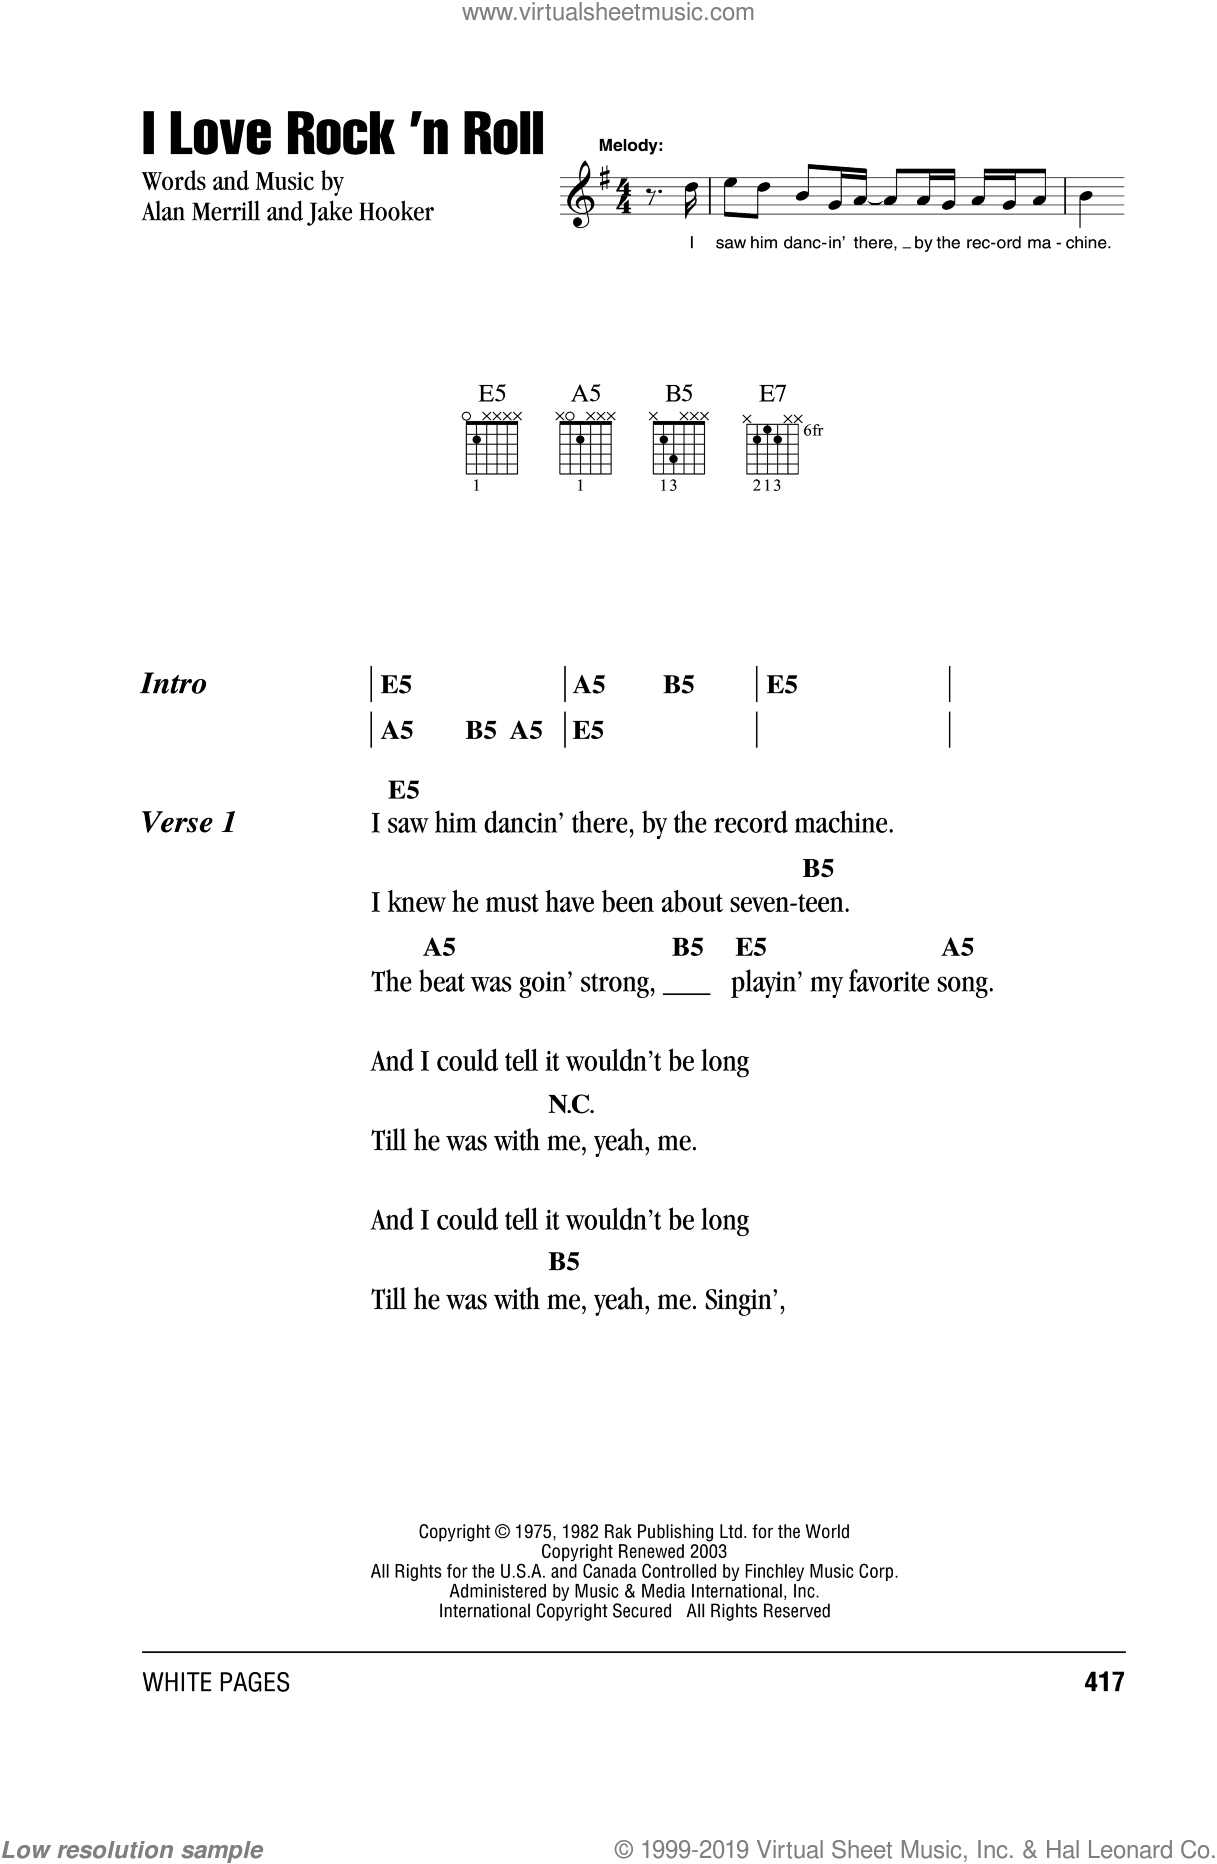 I Love Rock 'N Roll sheet music for guitar solo (chords, lyrics, melody) by Jake Hooker